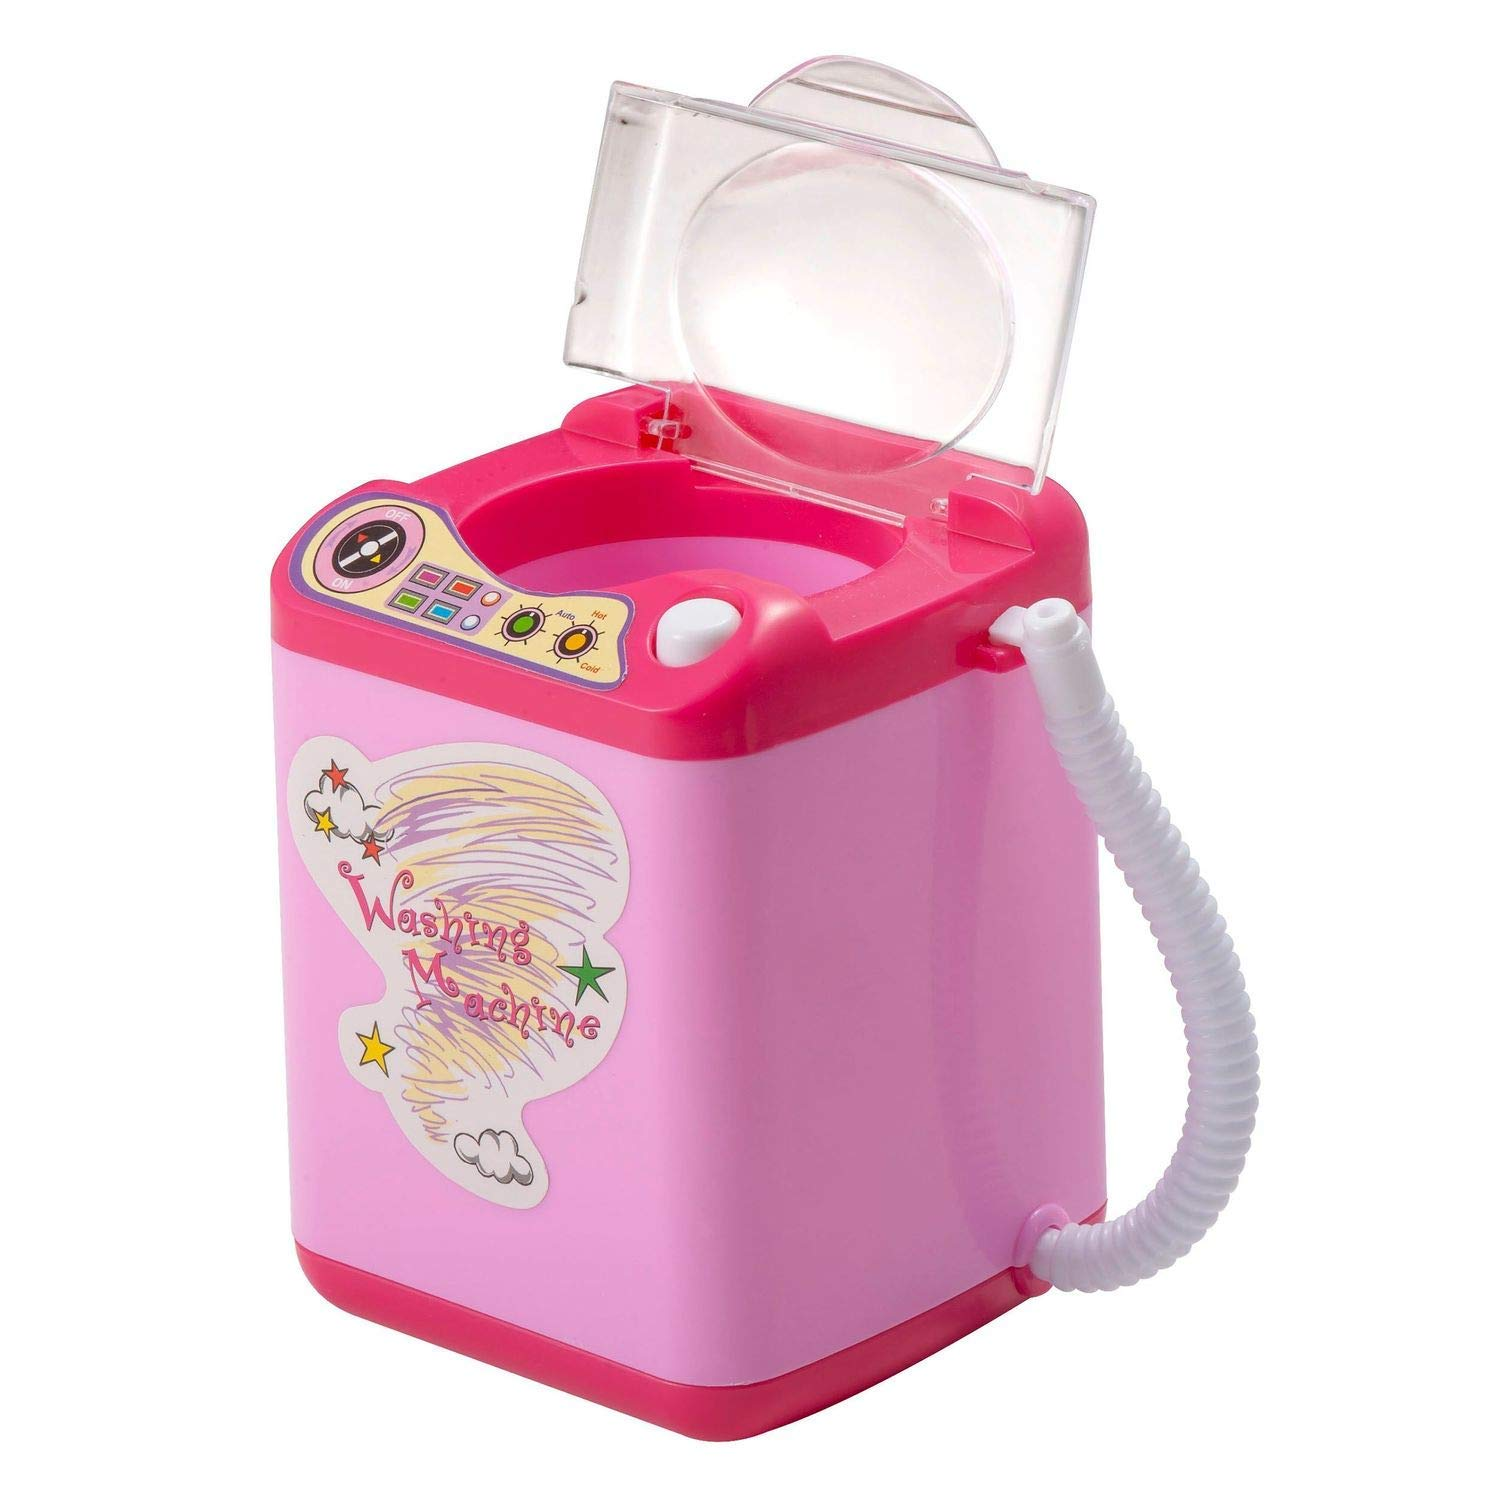 Zodaca Makeup Brush Cleaner Device, Automatic Washing Machine/Mini Toy for Makeup Brushes, Blender Sponge